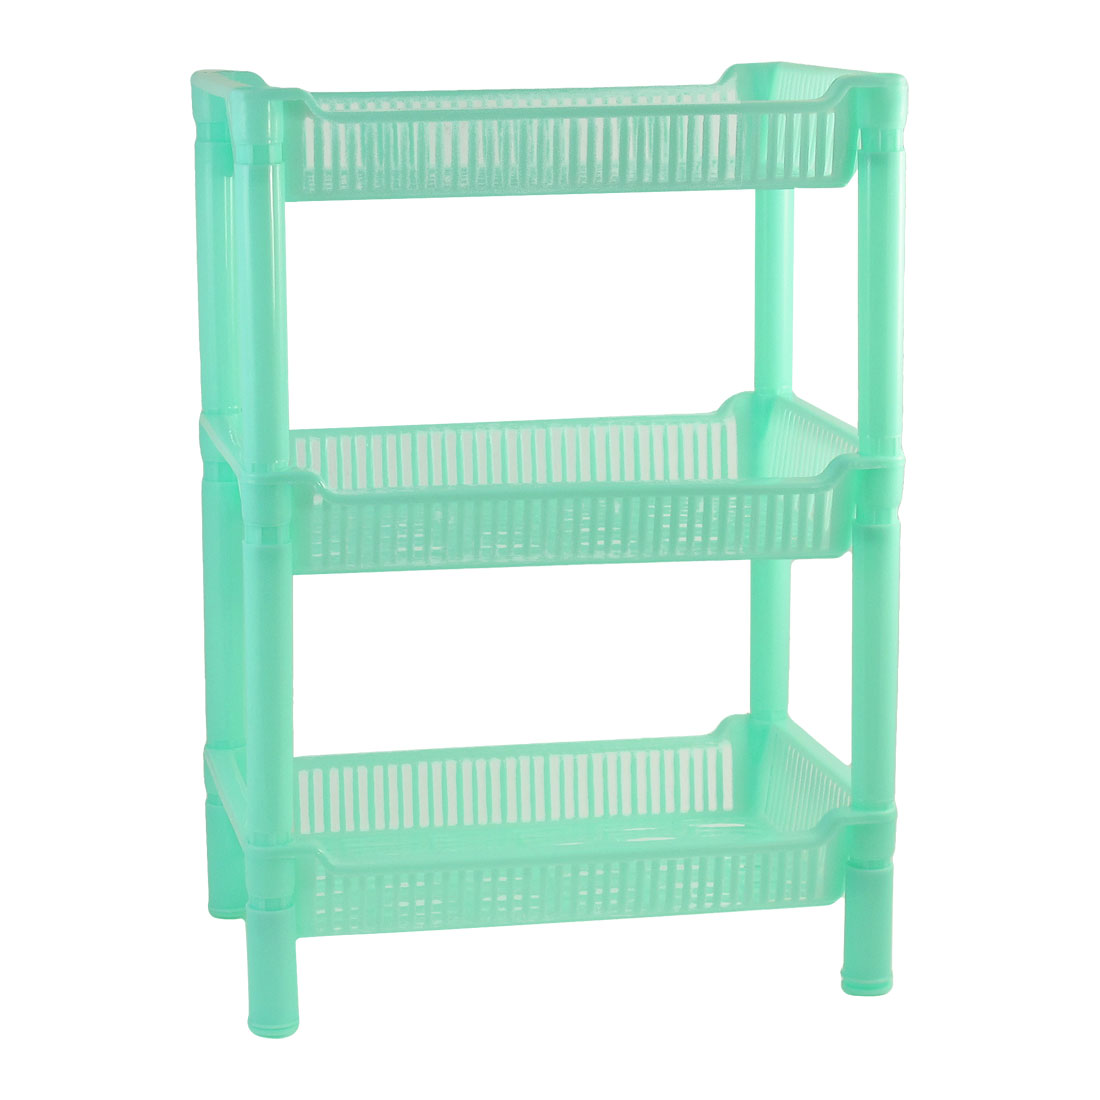 Household Rectangular Turquoise Plastic 3 Layers Shelf Storage Rack Organizer